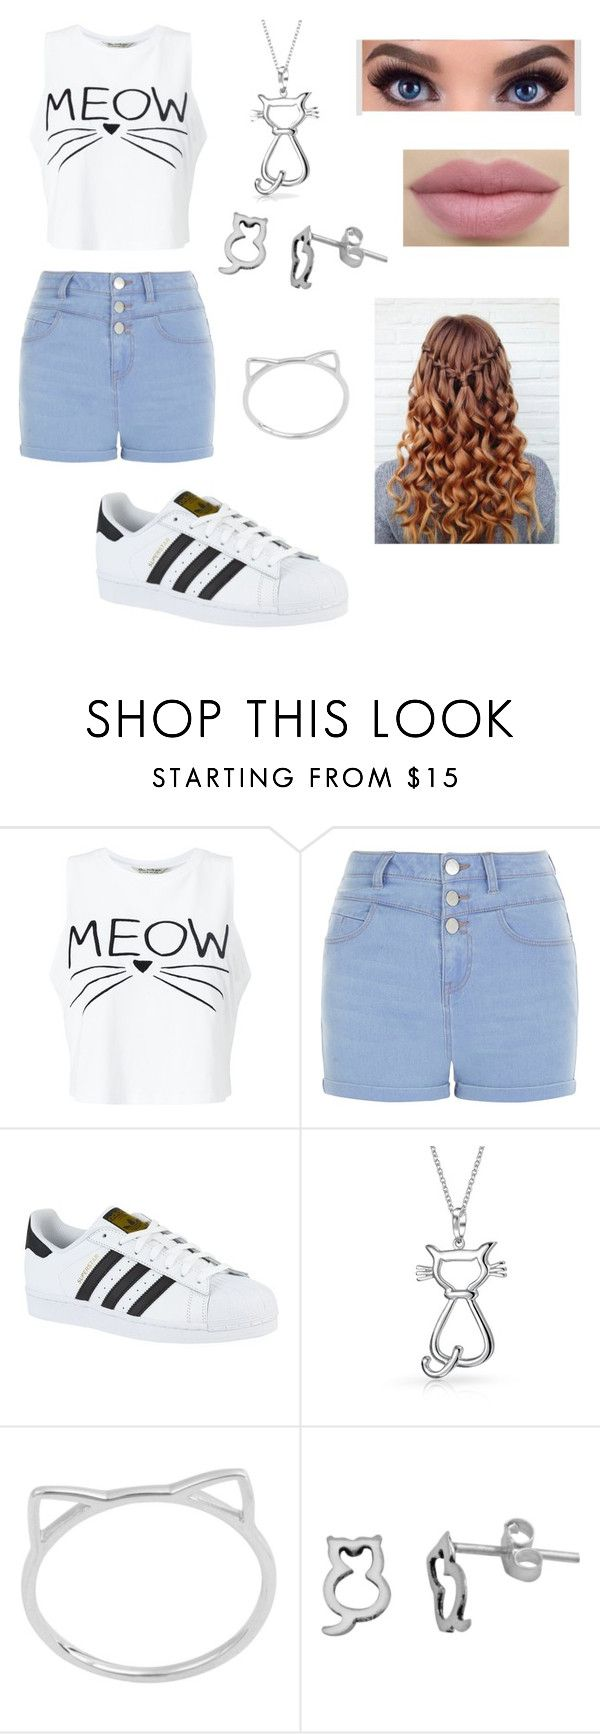 """""""The cats meaw🐱🐱"""" by mildred140501-1 ❤ liked on Polyvore featuring beauty, Miss Selfridge, New Look, adidas, Bling Jewelry, Midsummer Star and Itsy Bitsy"""